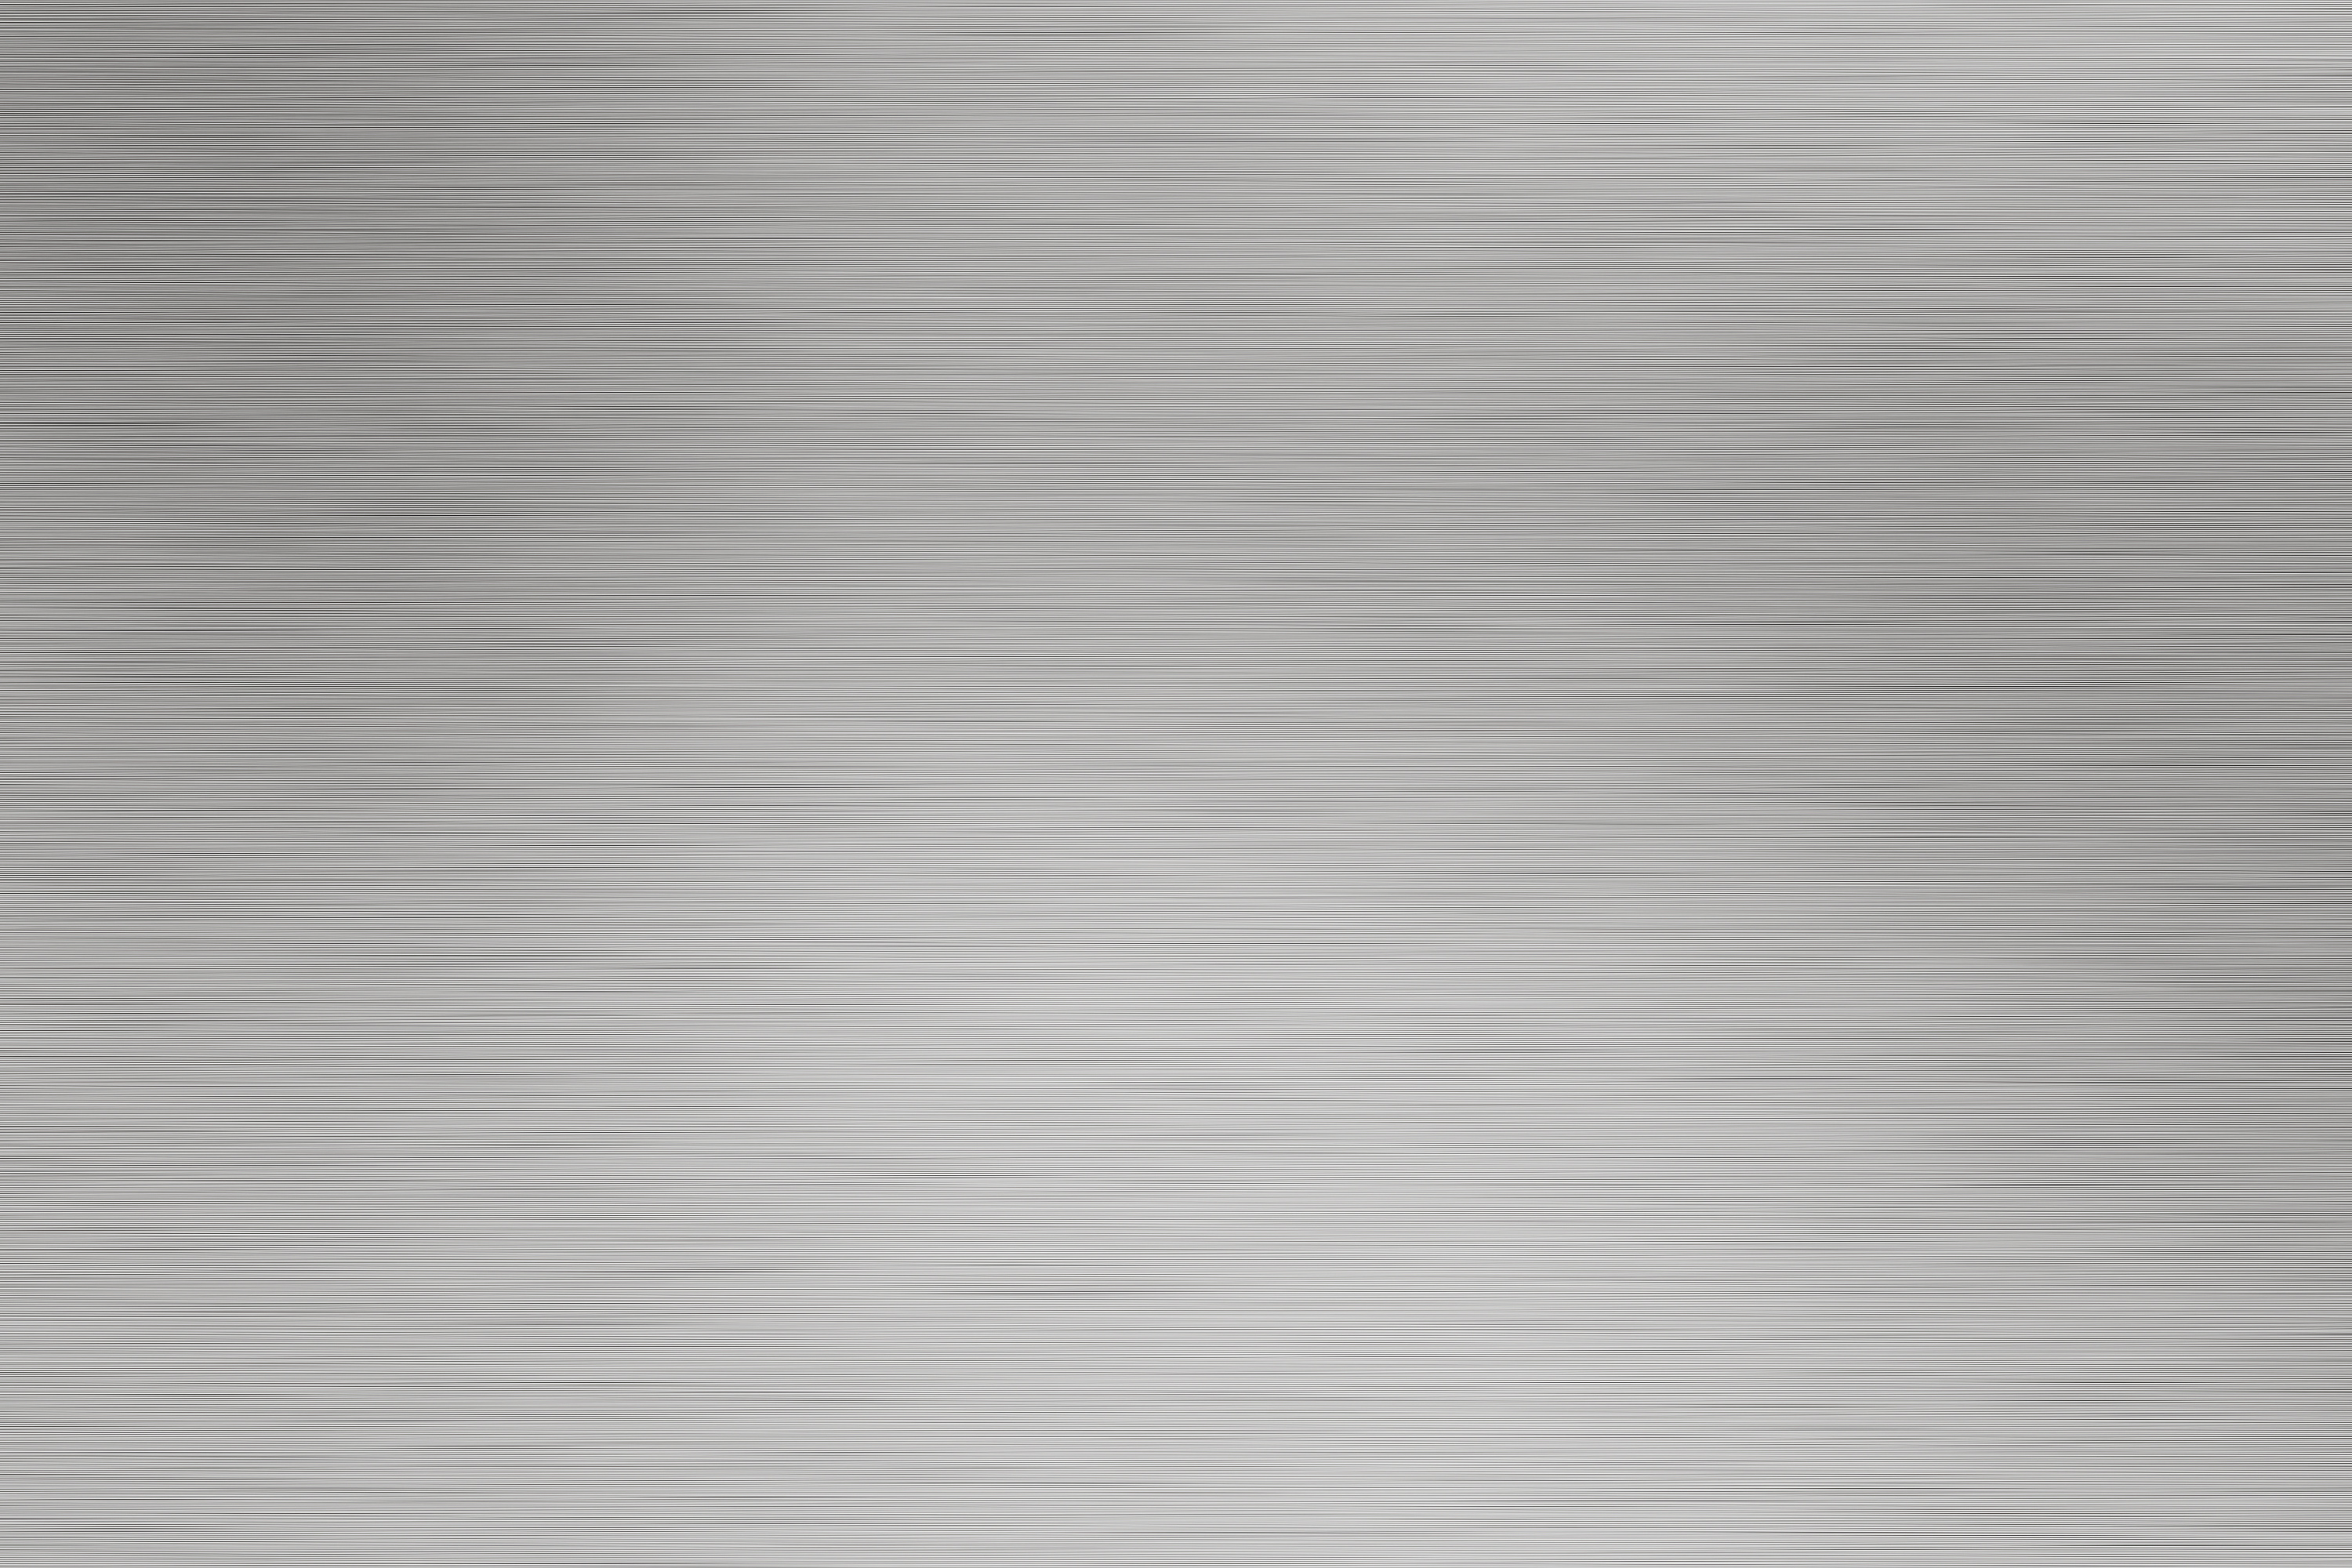 brushed-silver-metallic-background | The Good Gear Company